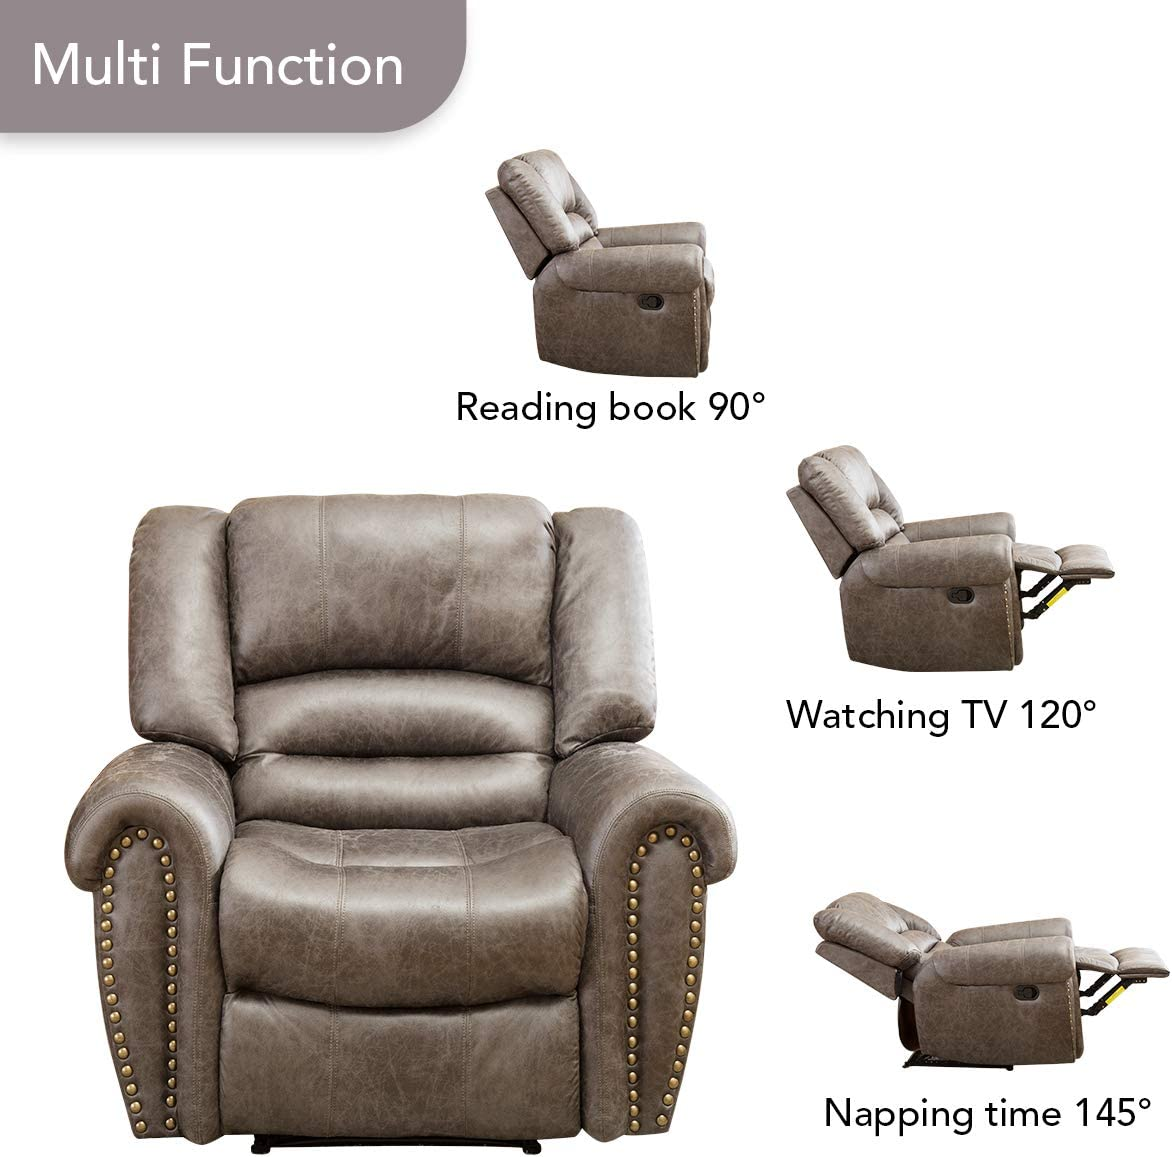 BONZY Oversized Recliner Leather Lounge Chair reclining angles